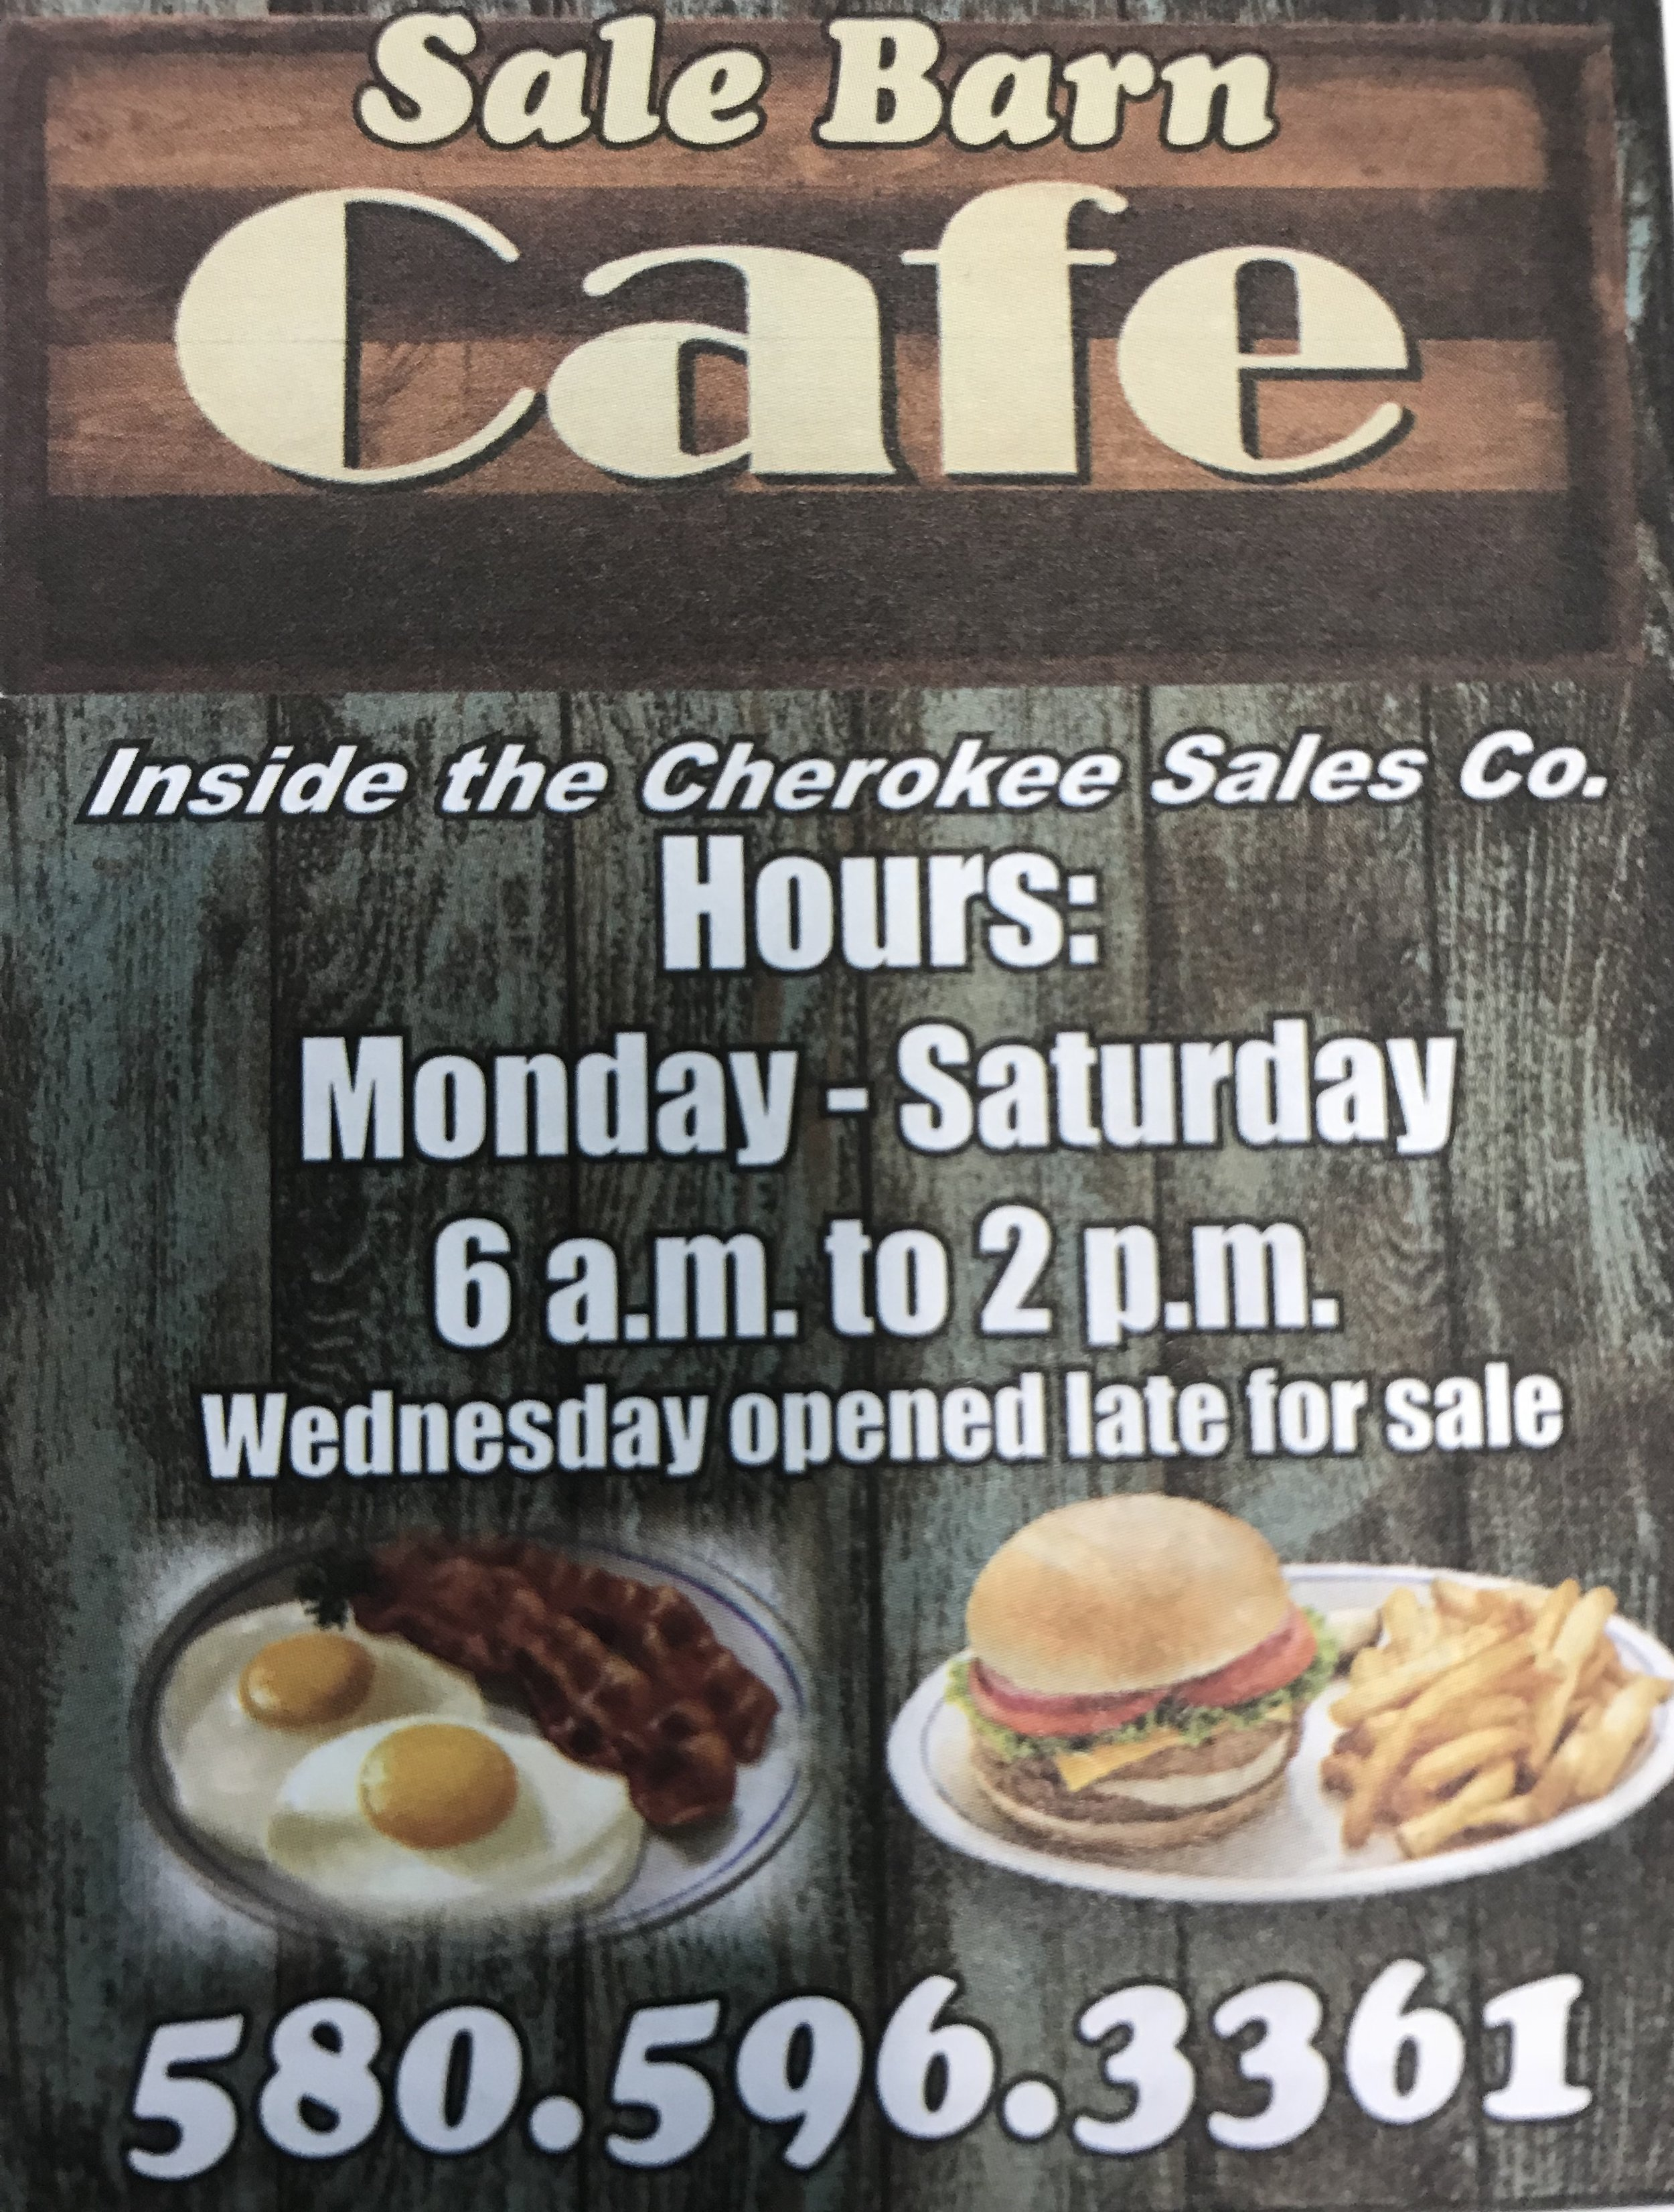 - Sale Barn Cafelocated inside the Cherokee Sales Co ~ 60902 Harmon Rd580-596-3361Orders to go or stay and enjoy their cozy cafe inside the Sale Barn. They serve breakfast & all kinds of lunch options. Hours are Mon thru Sat 6 AM to 2 PM (Wednesday's open late for sales).